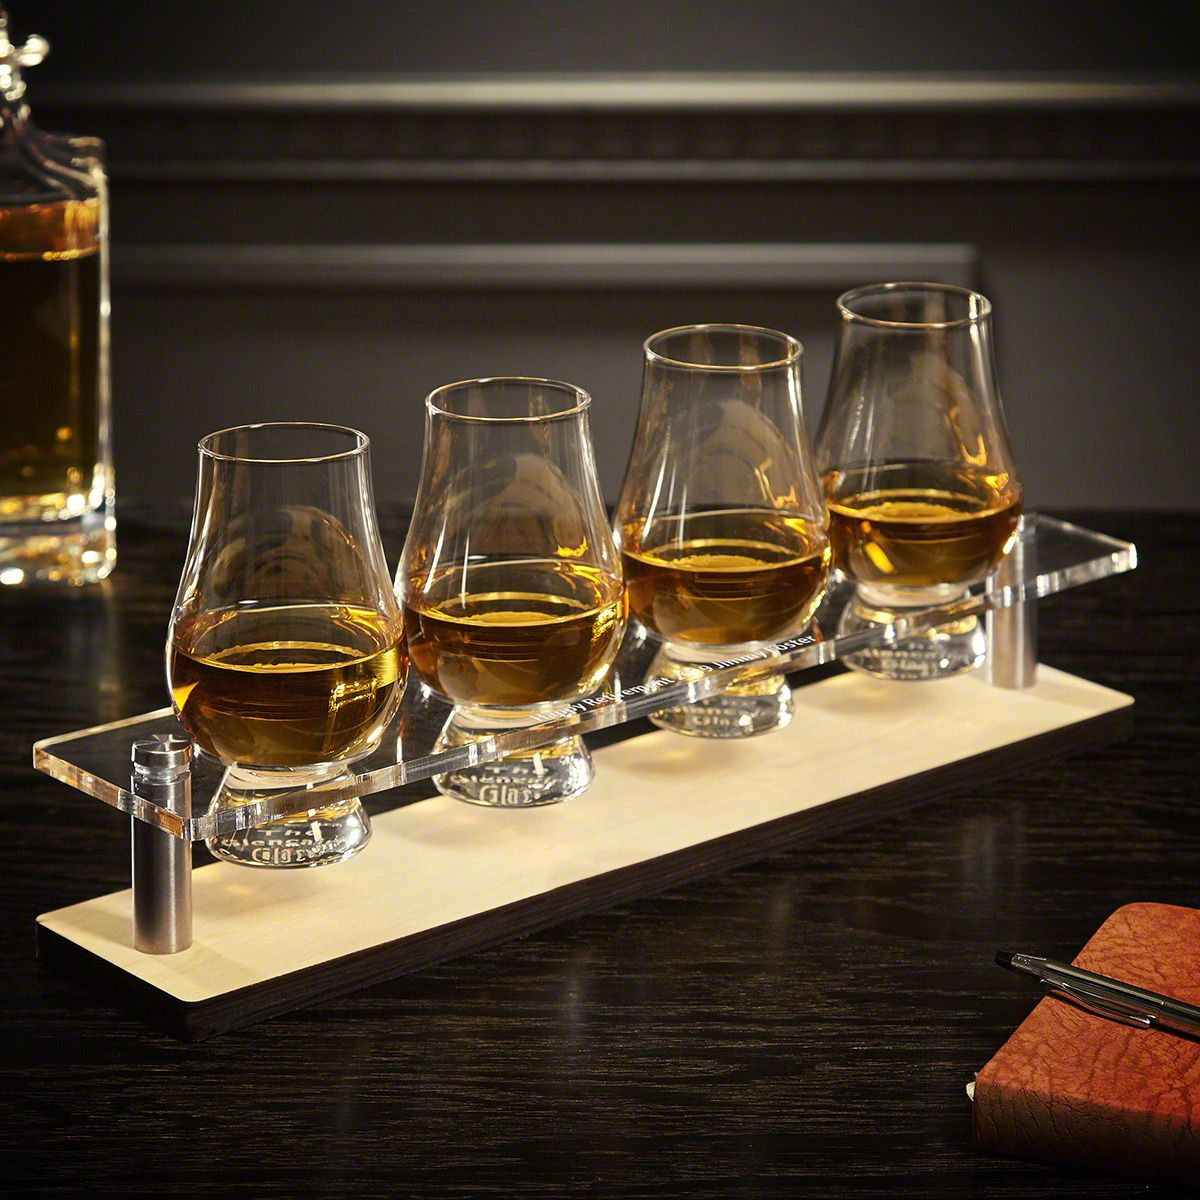 aad80cbbec5 Glencairn Personalized Serving Tray 5 pc Set